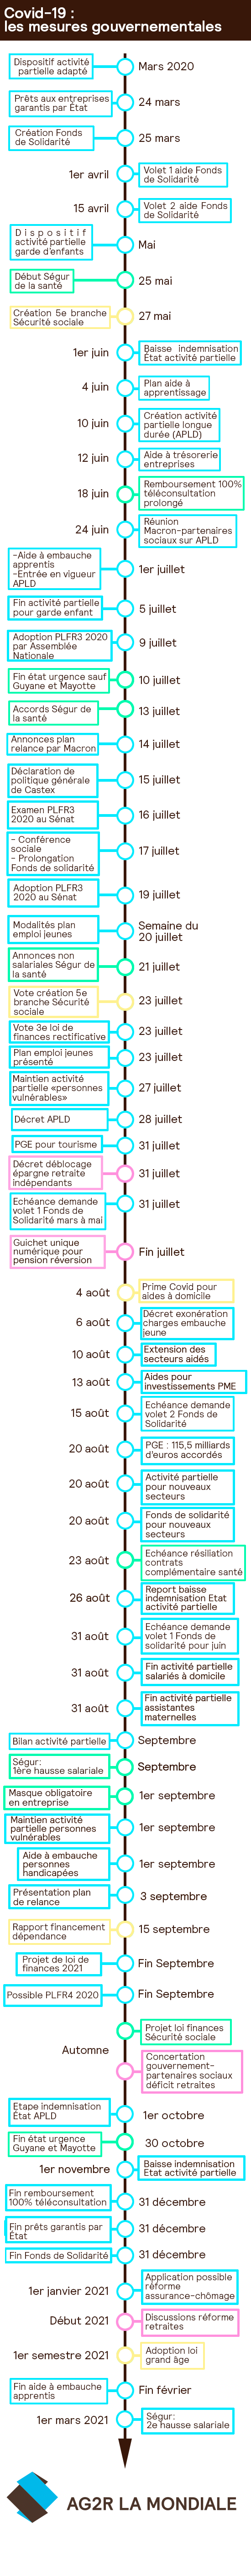 Ag2rlamondiale actualite infographie covid mesures gouvernementales 0709